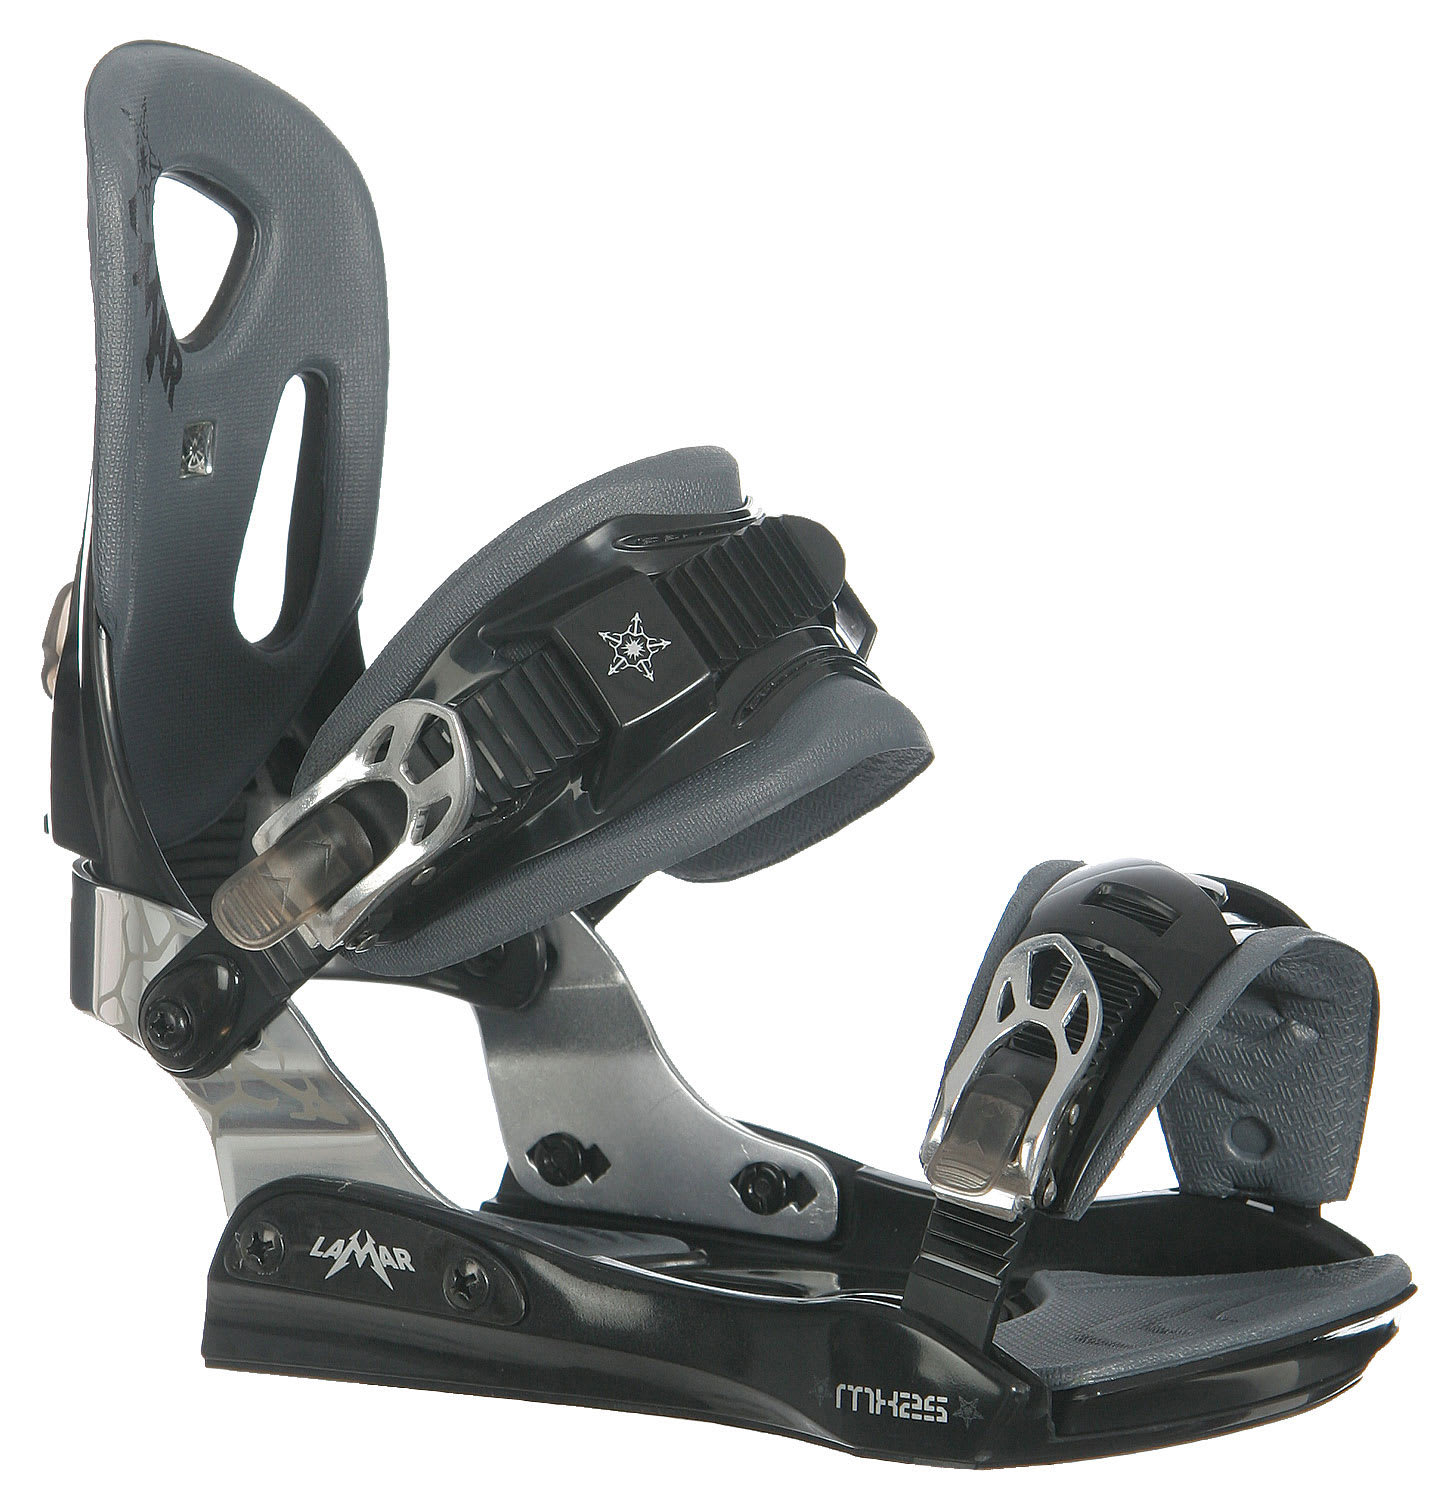 On Sale Lamar MX25 Snowboard Bindings Up To 80% Off